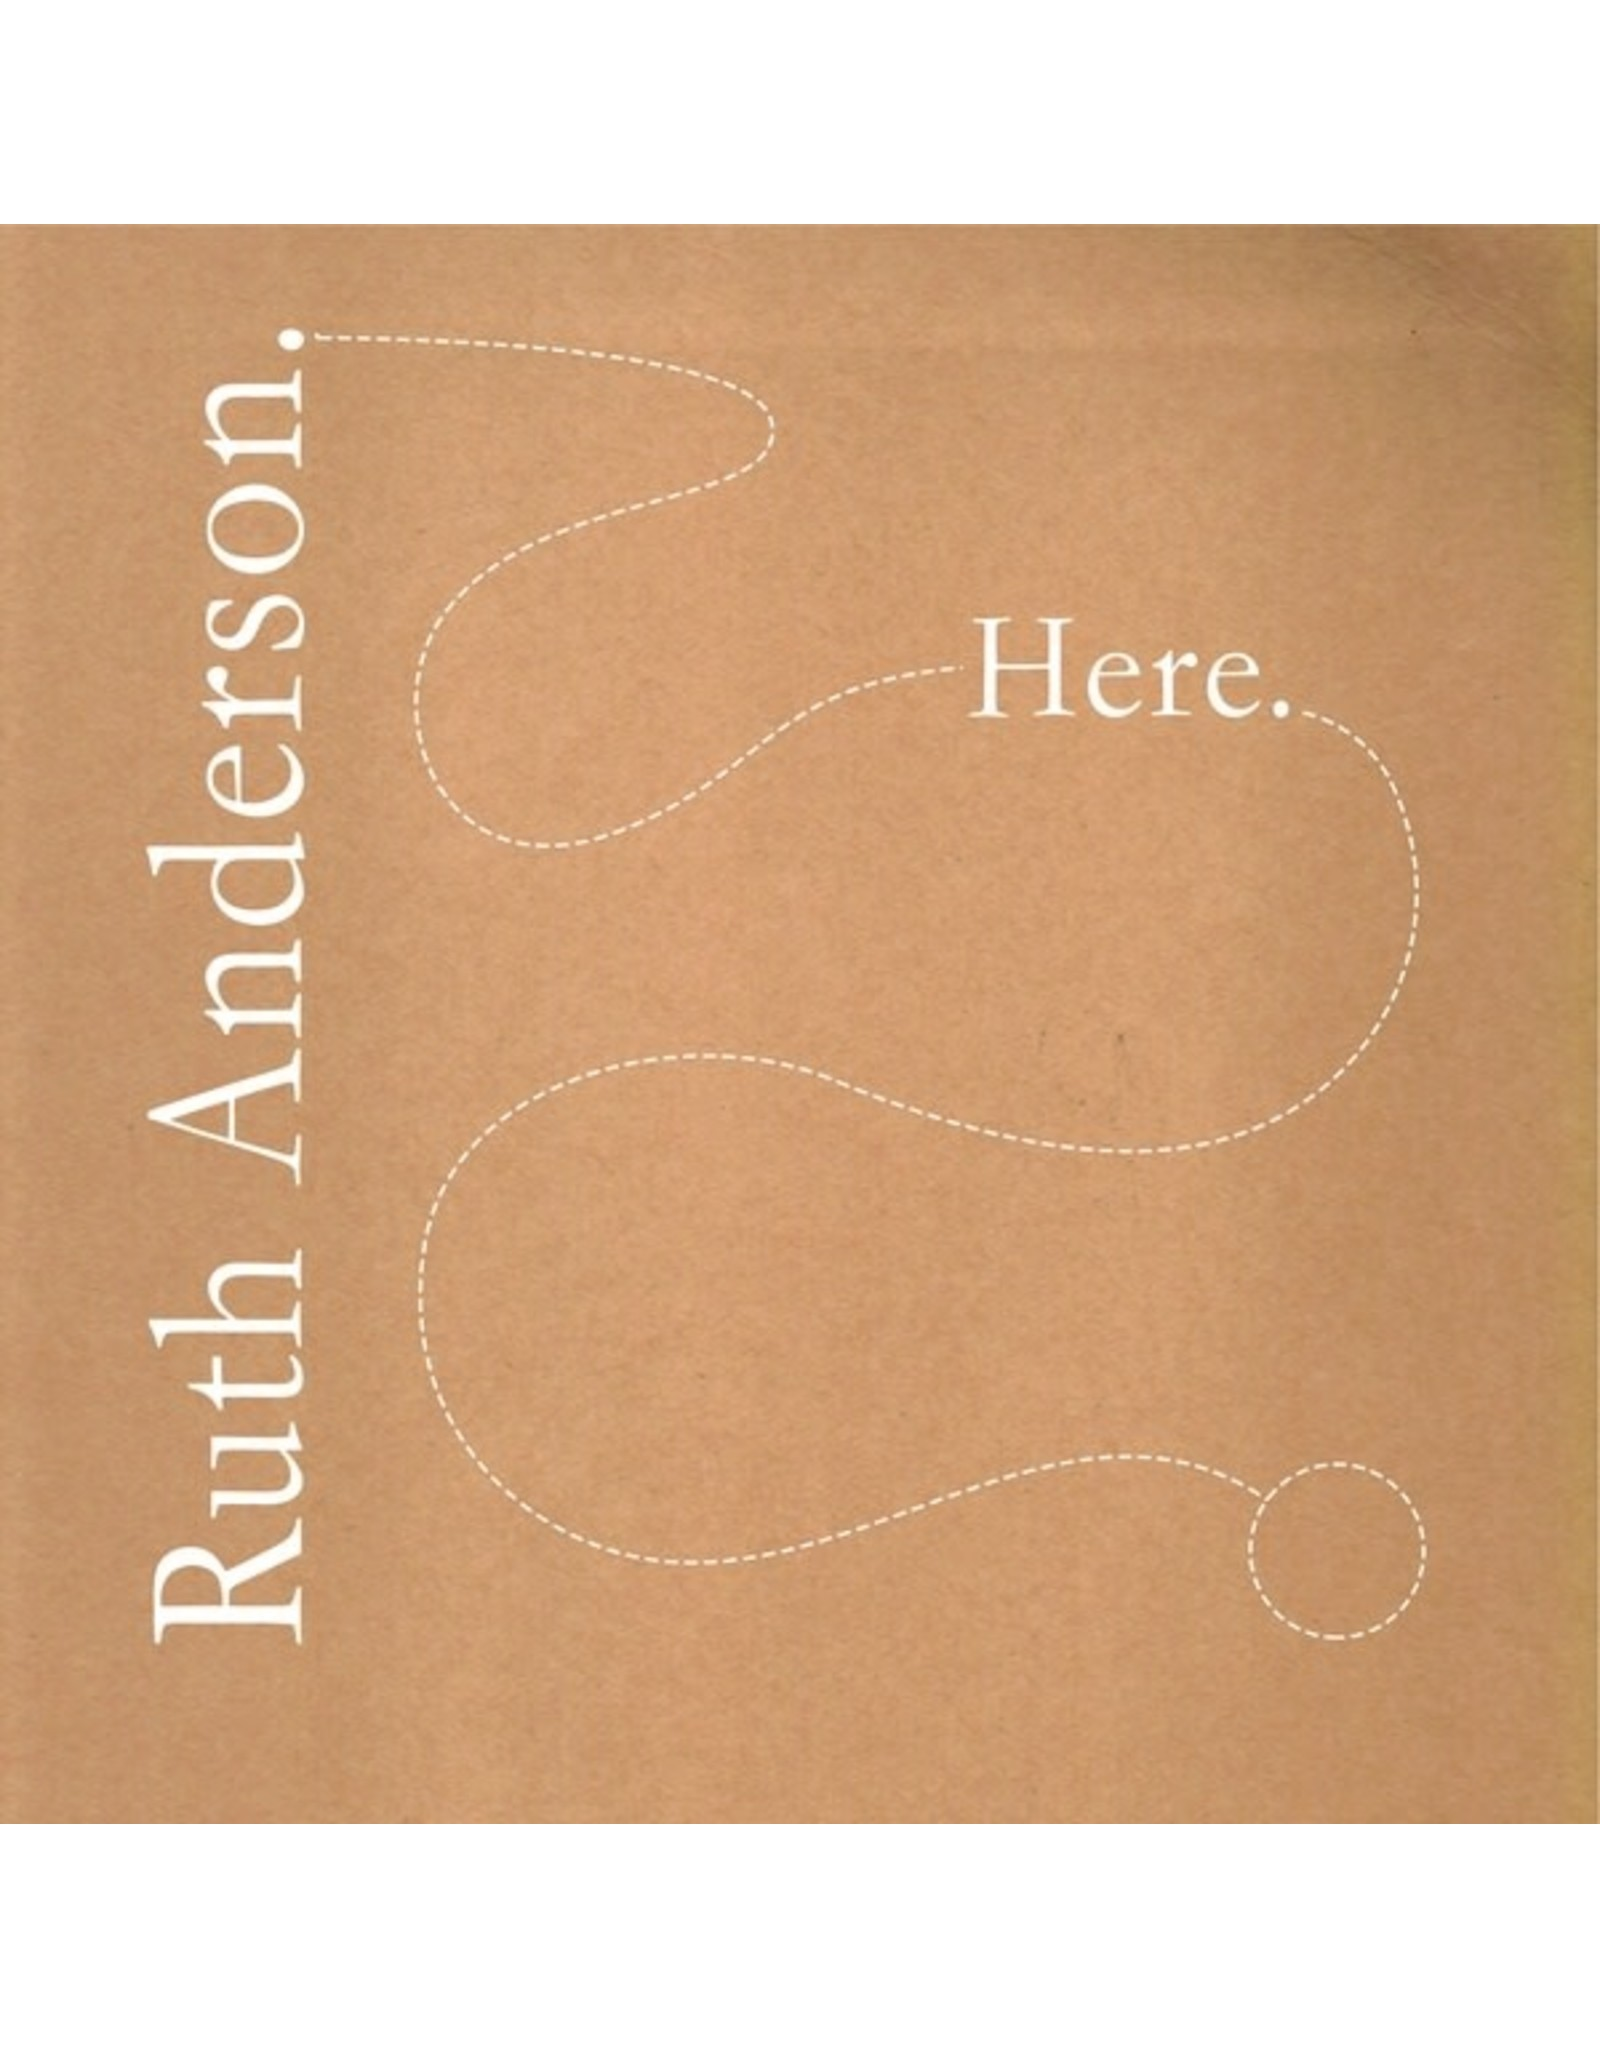 Arc Light Edition Anderson, Ruth: Here LP